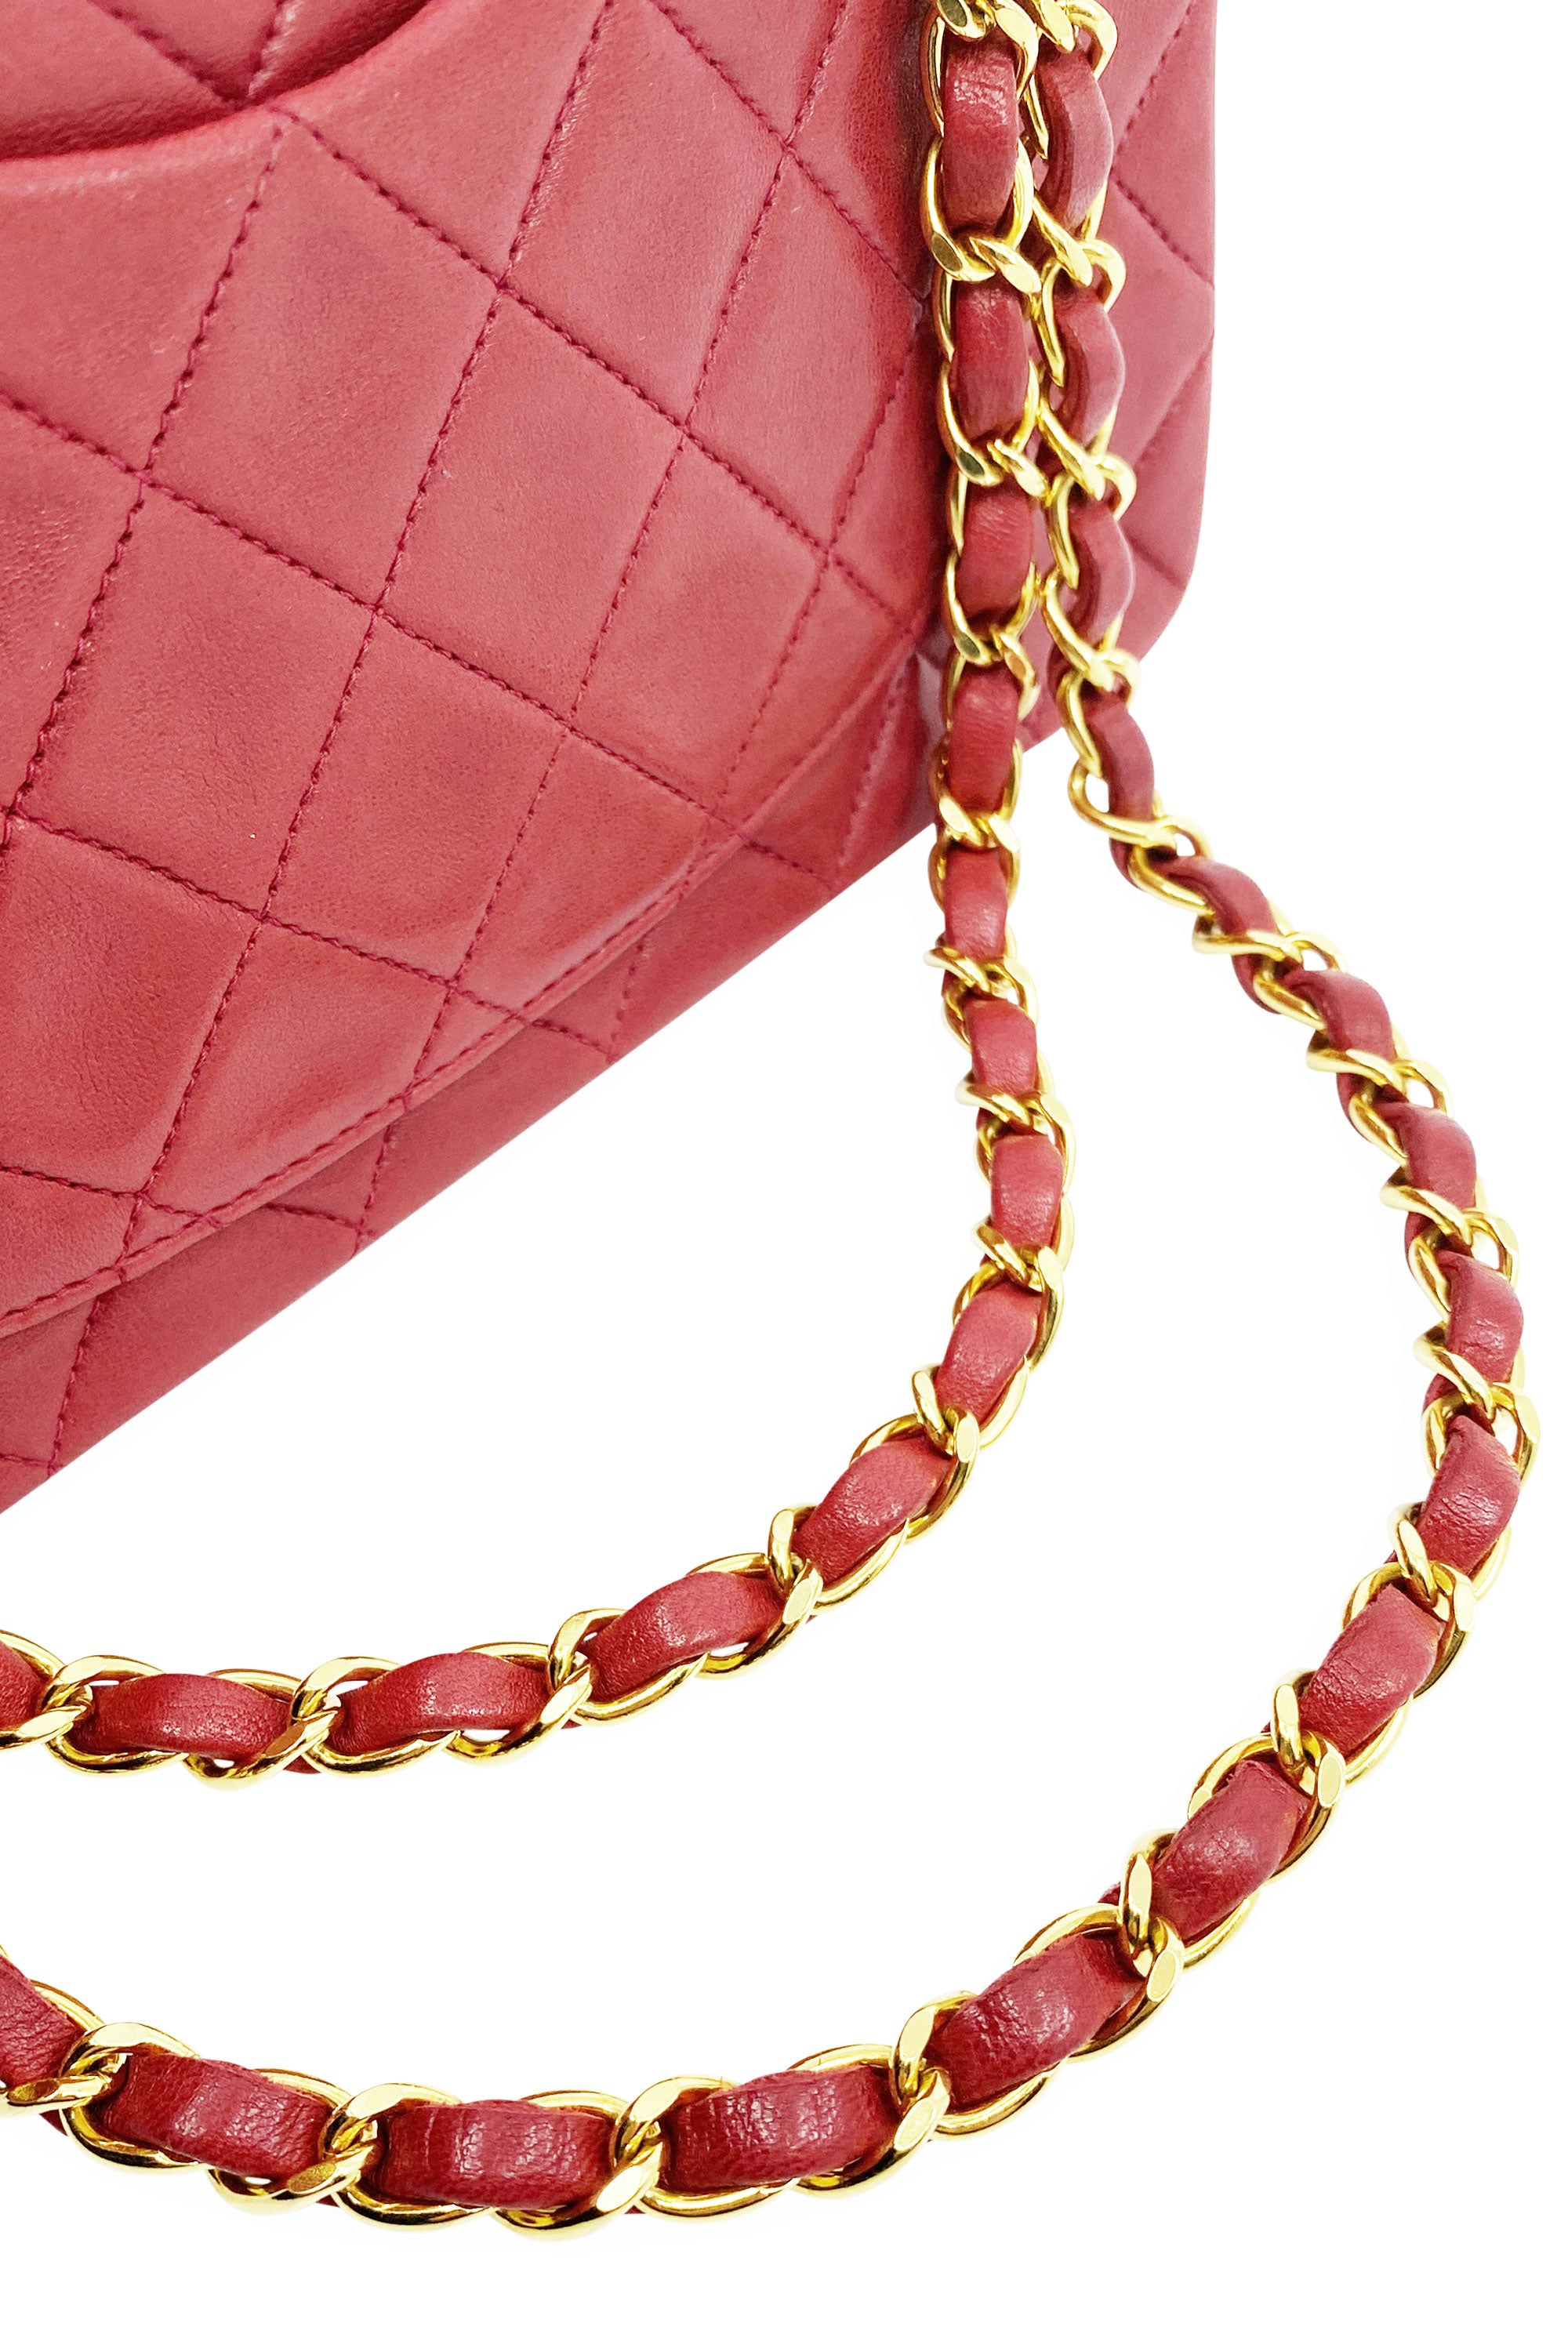 CHANEL Vintage Red Double Flap Bag Small